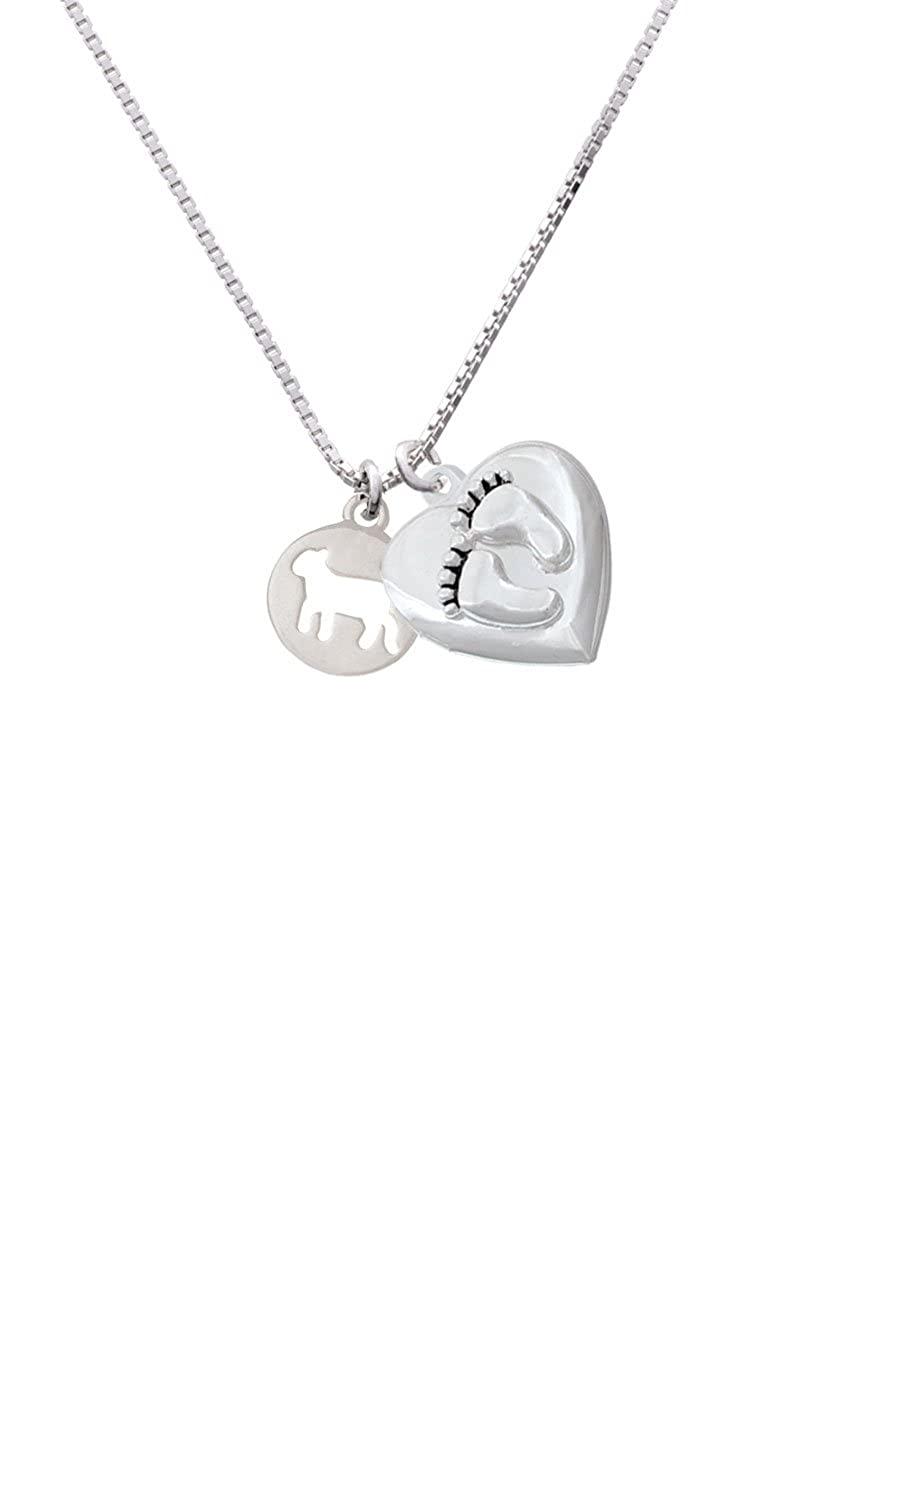 Lamb Silhouette Custom Engraved Baby Feet Heart Locket Necklace